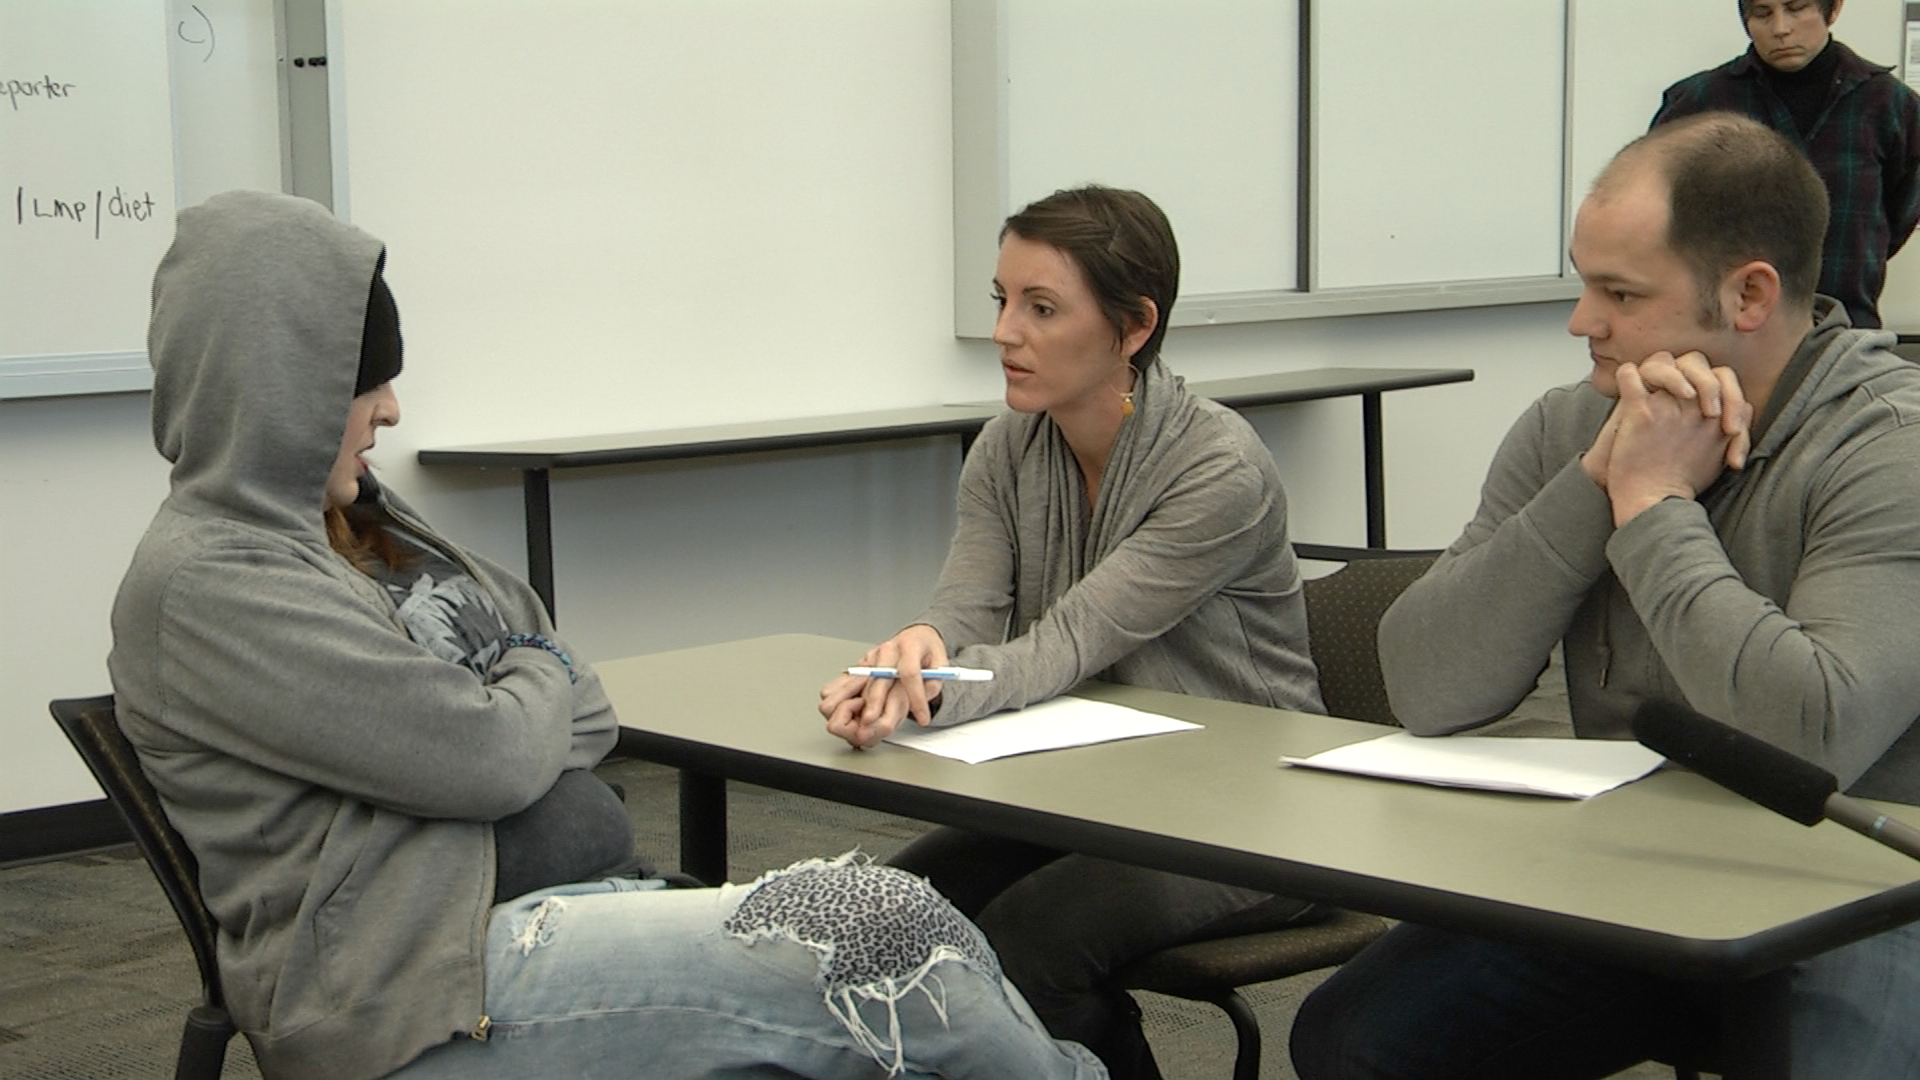 Students speak to an actor as a sullen teen